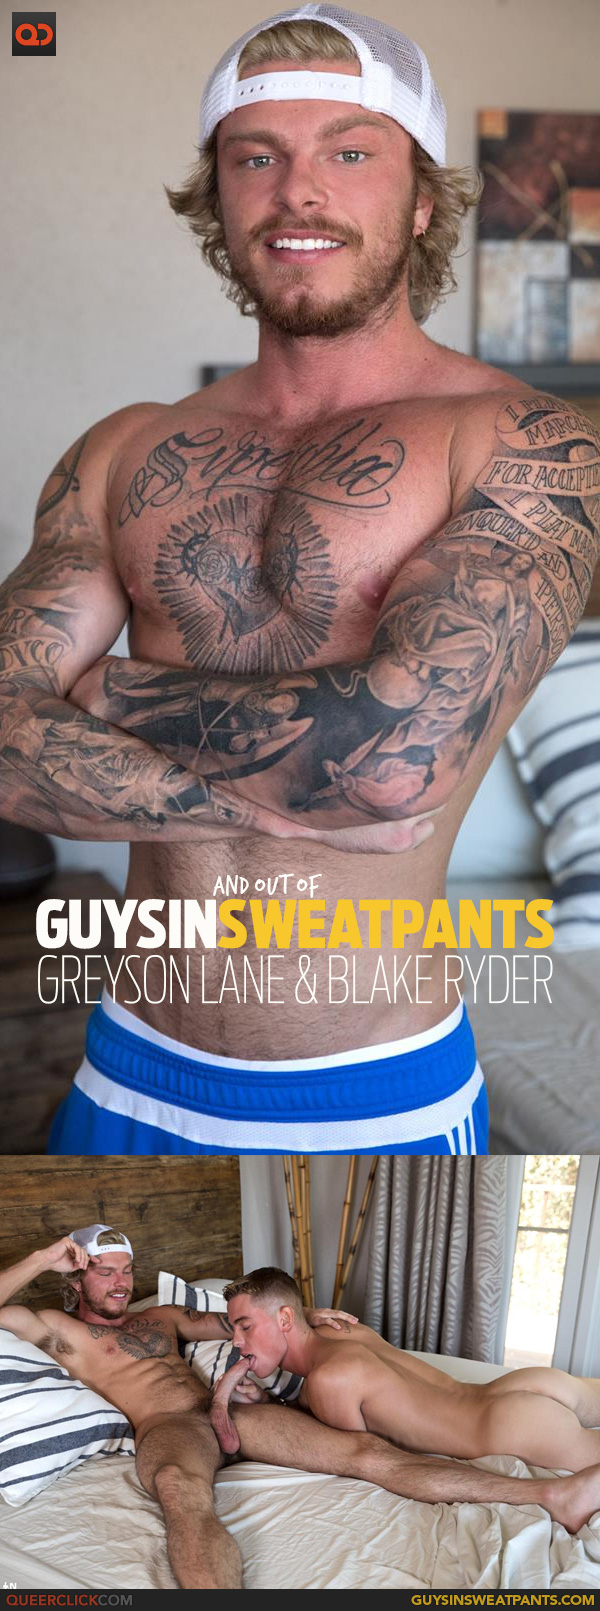 Guys in Sweatpants: Greyson Lane & Blake Ryder